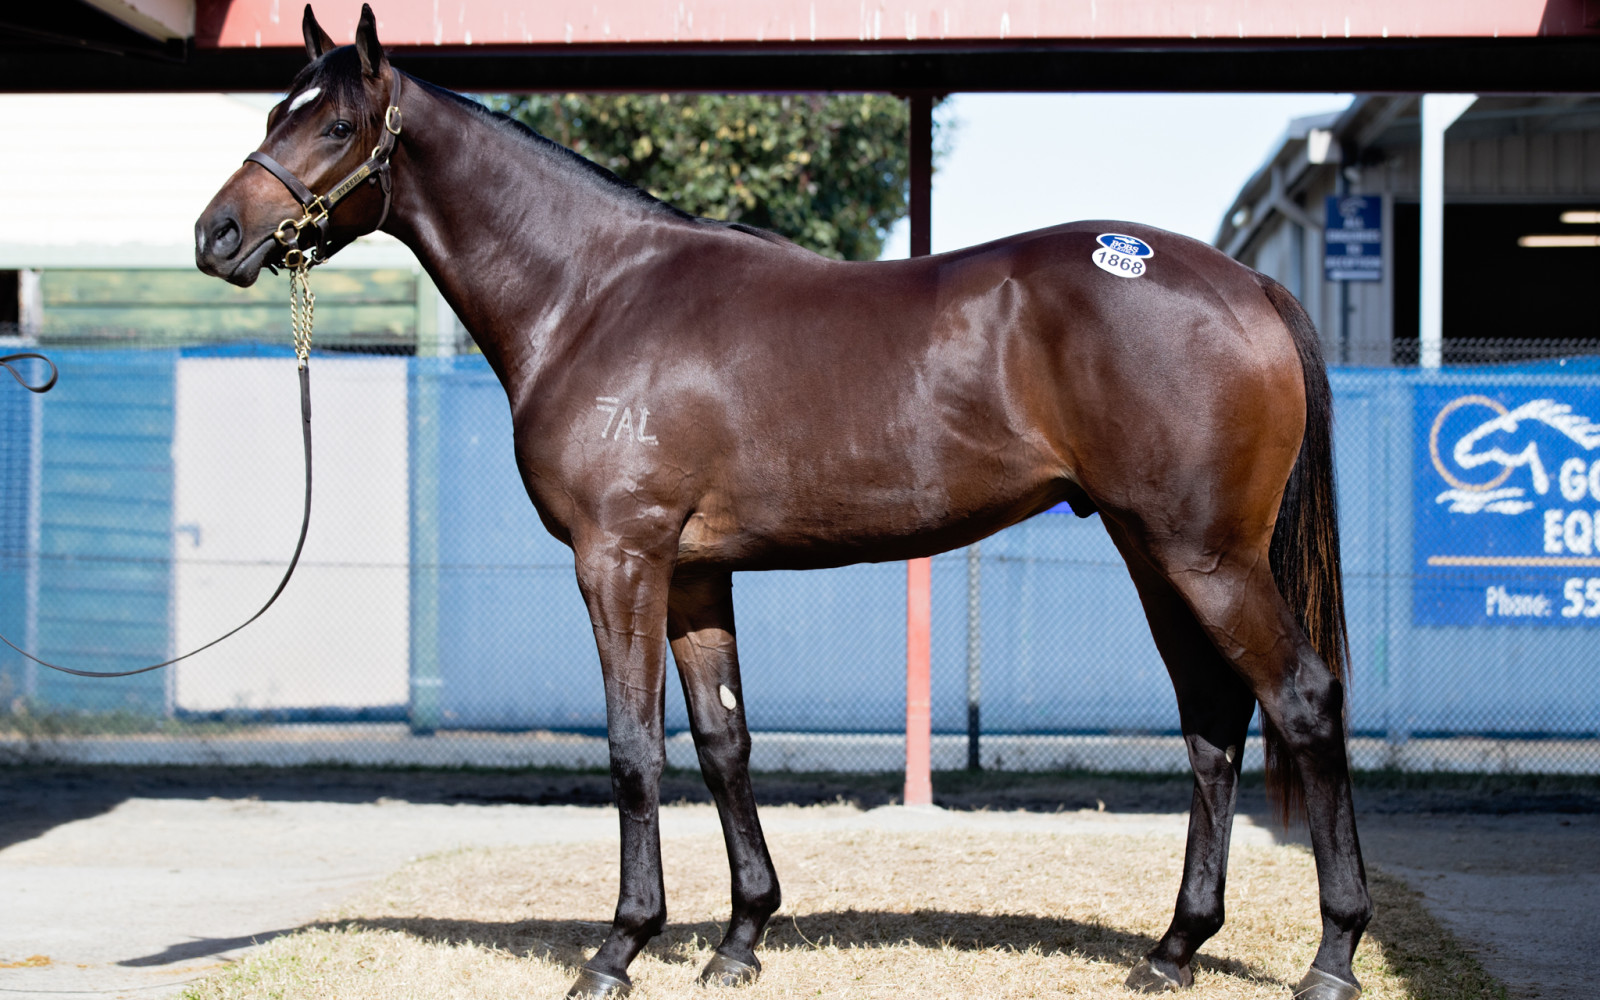 GOLD COAST YEARLING SALE – Lot 1868 So You Think/Spinnawitch brown Colt